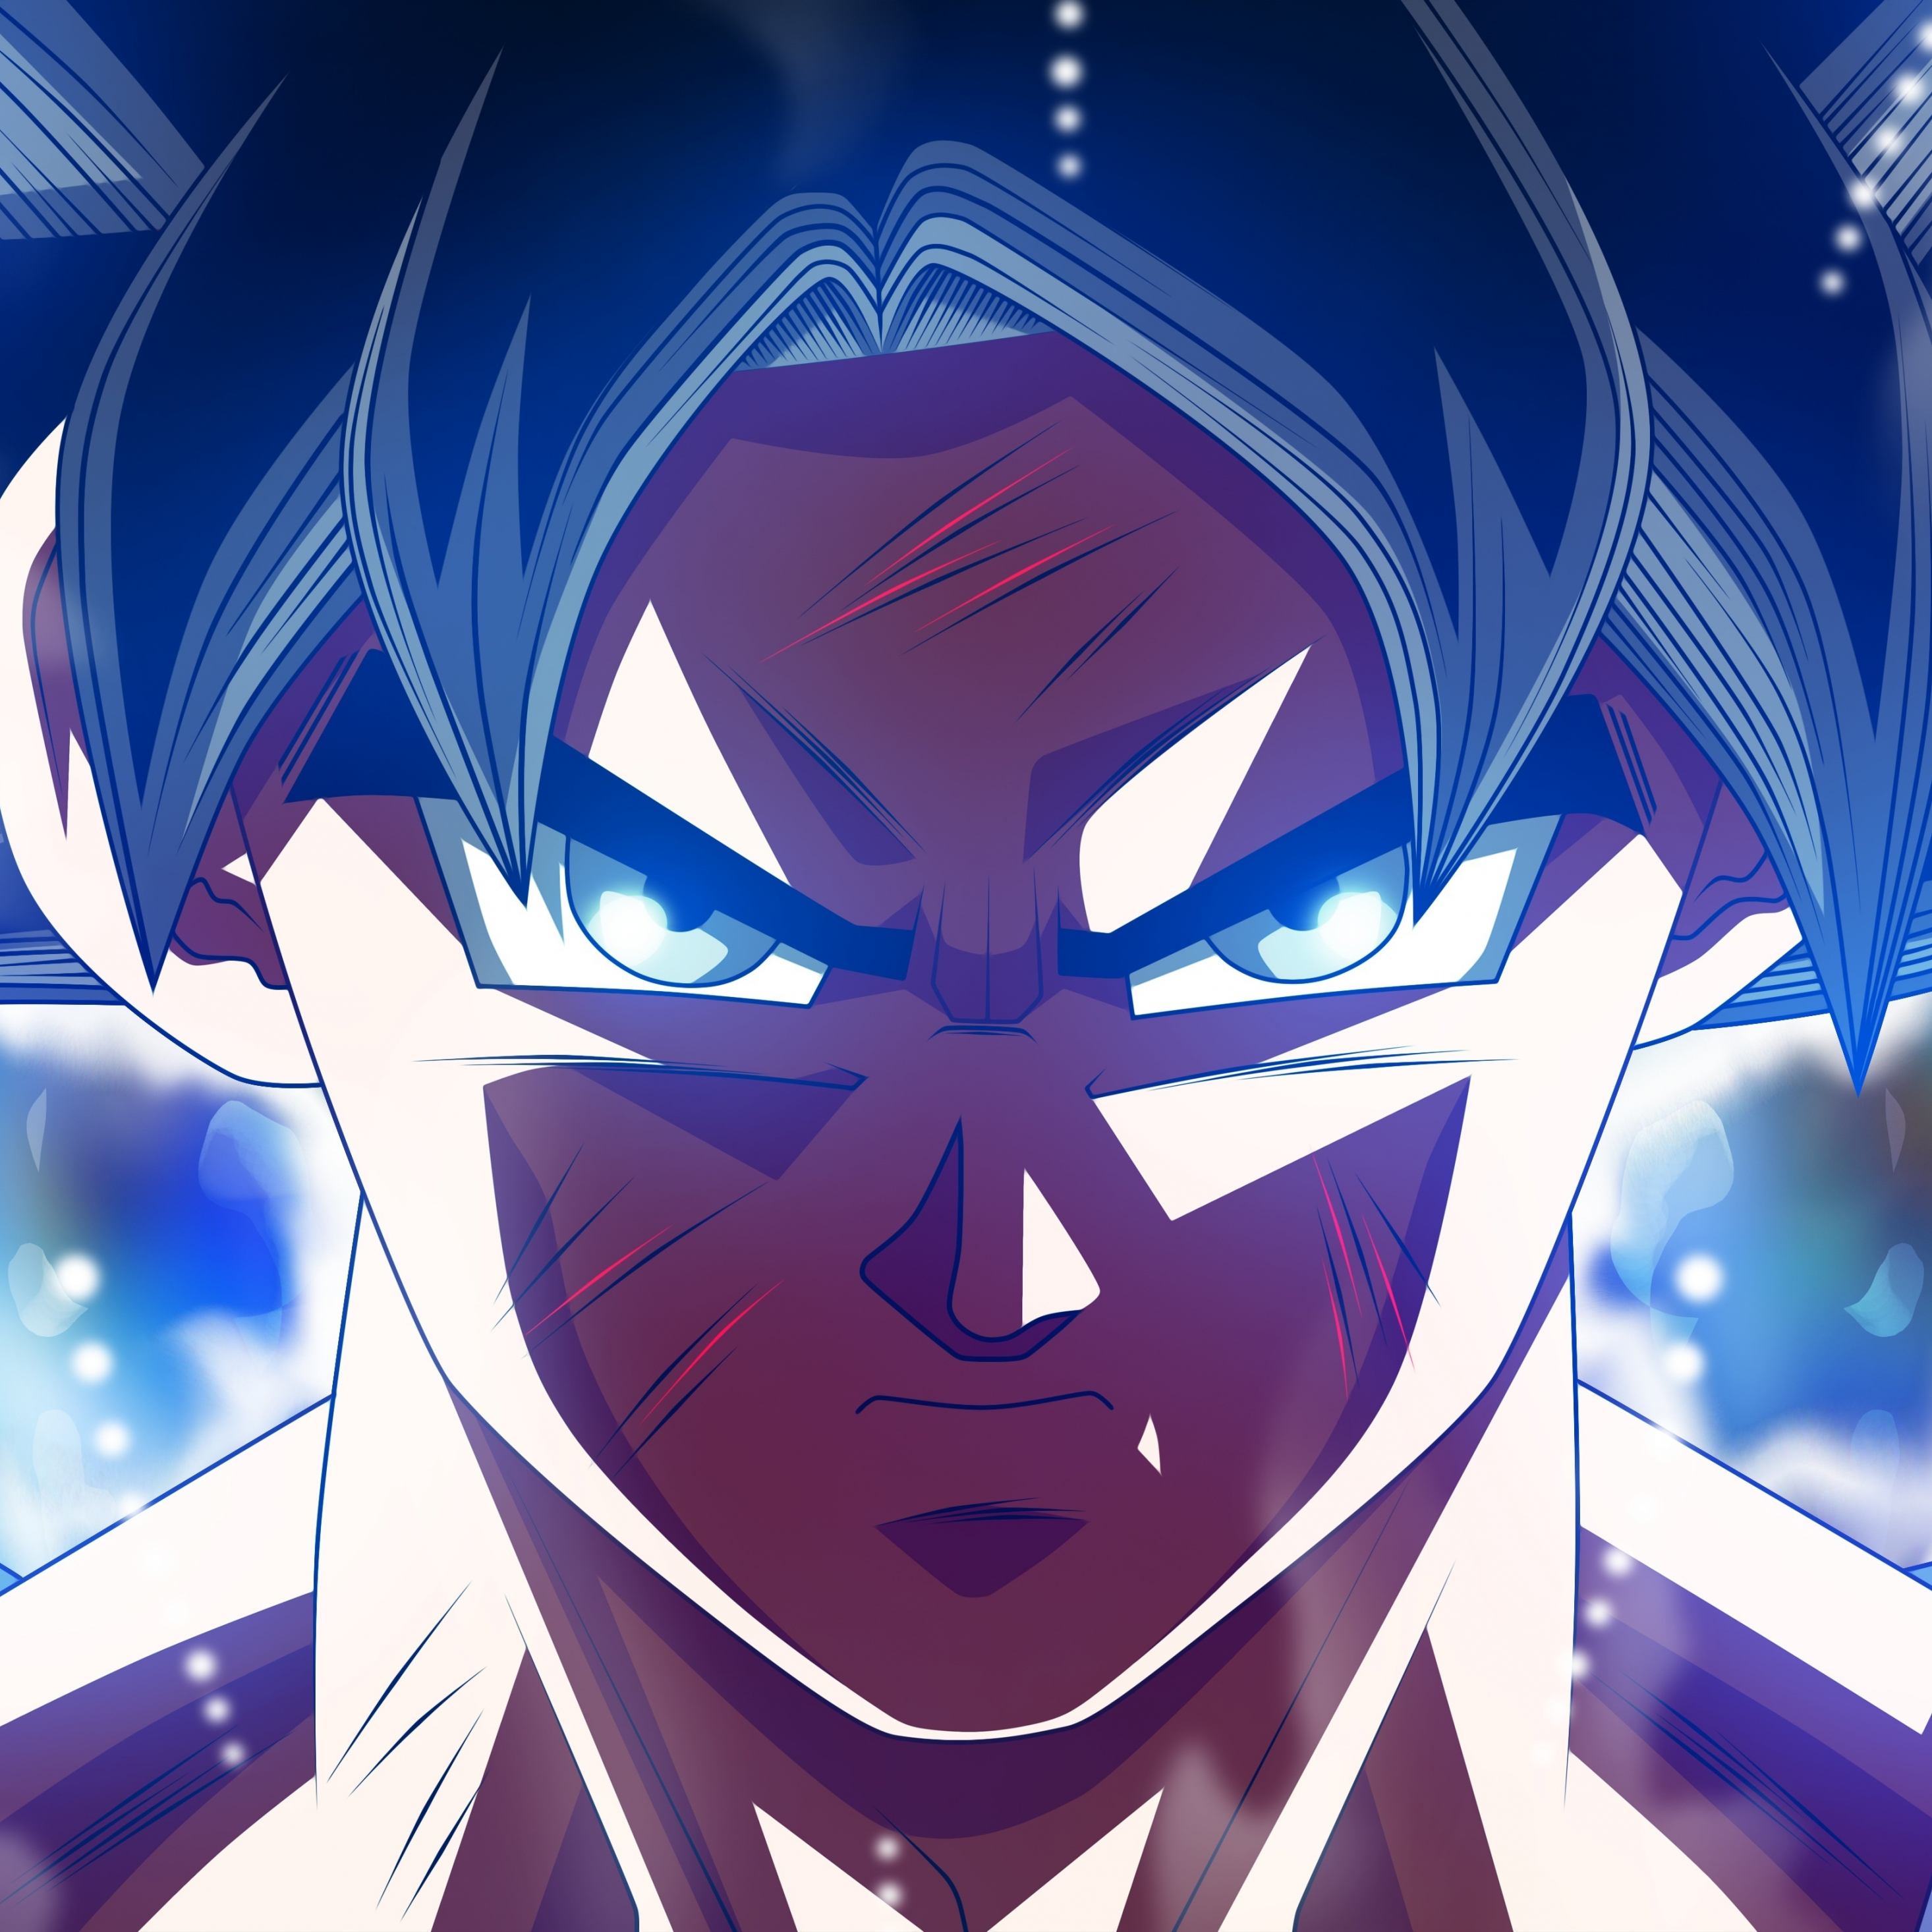 Download 2932x2932 Wallpaper Wounded Son Goku Ultra